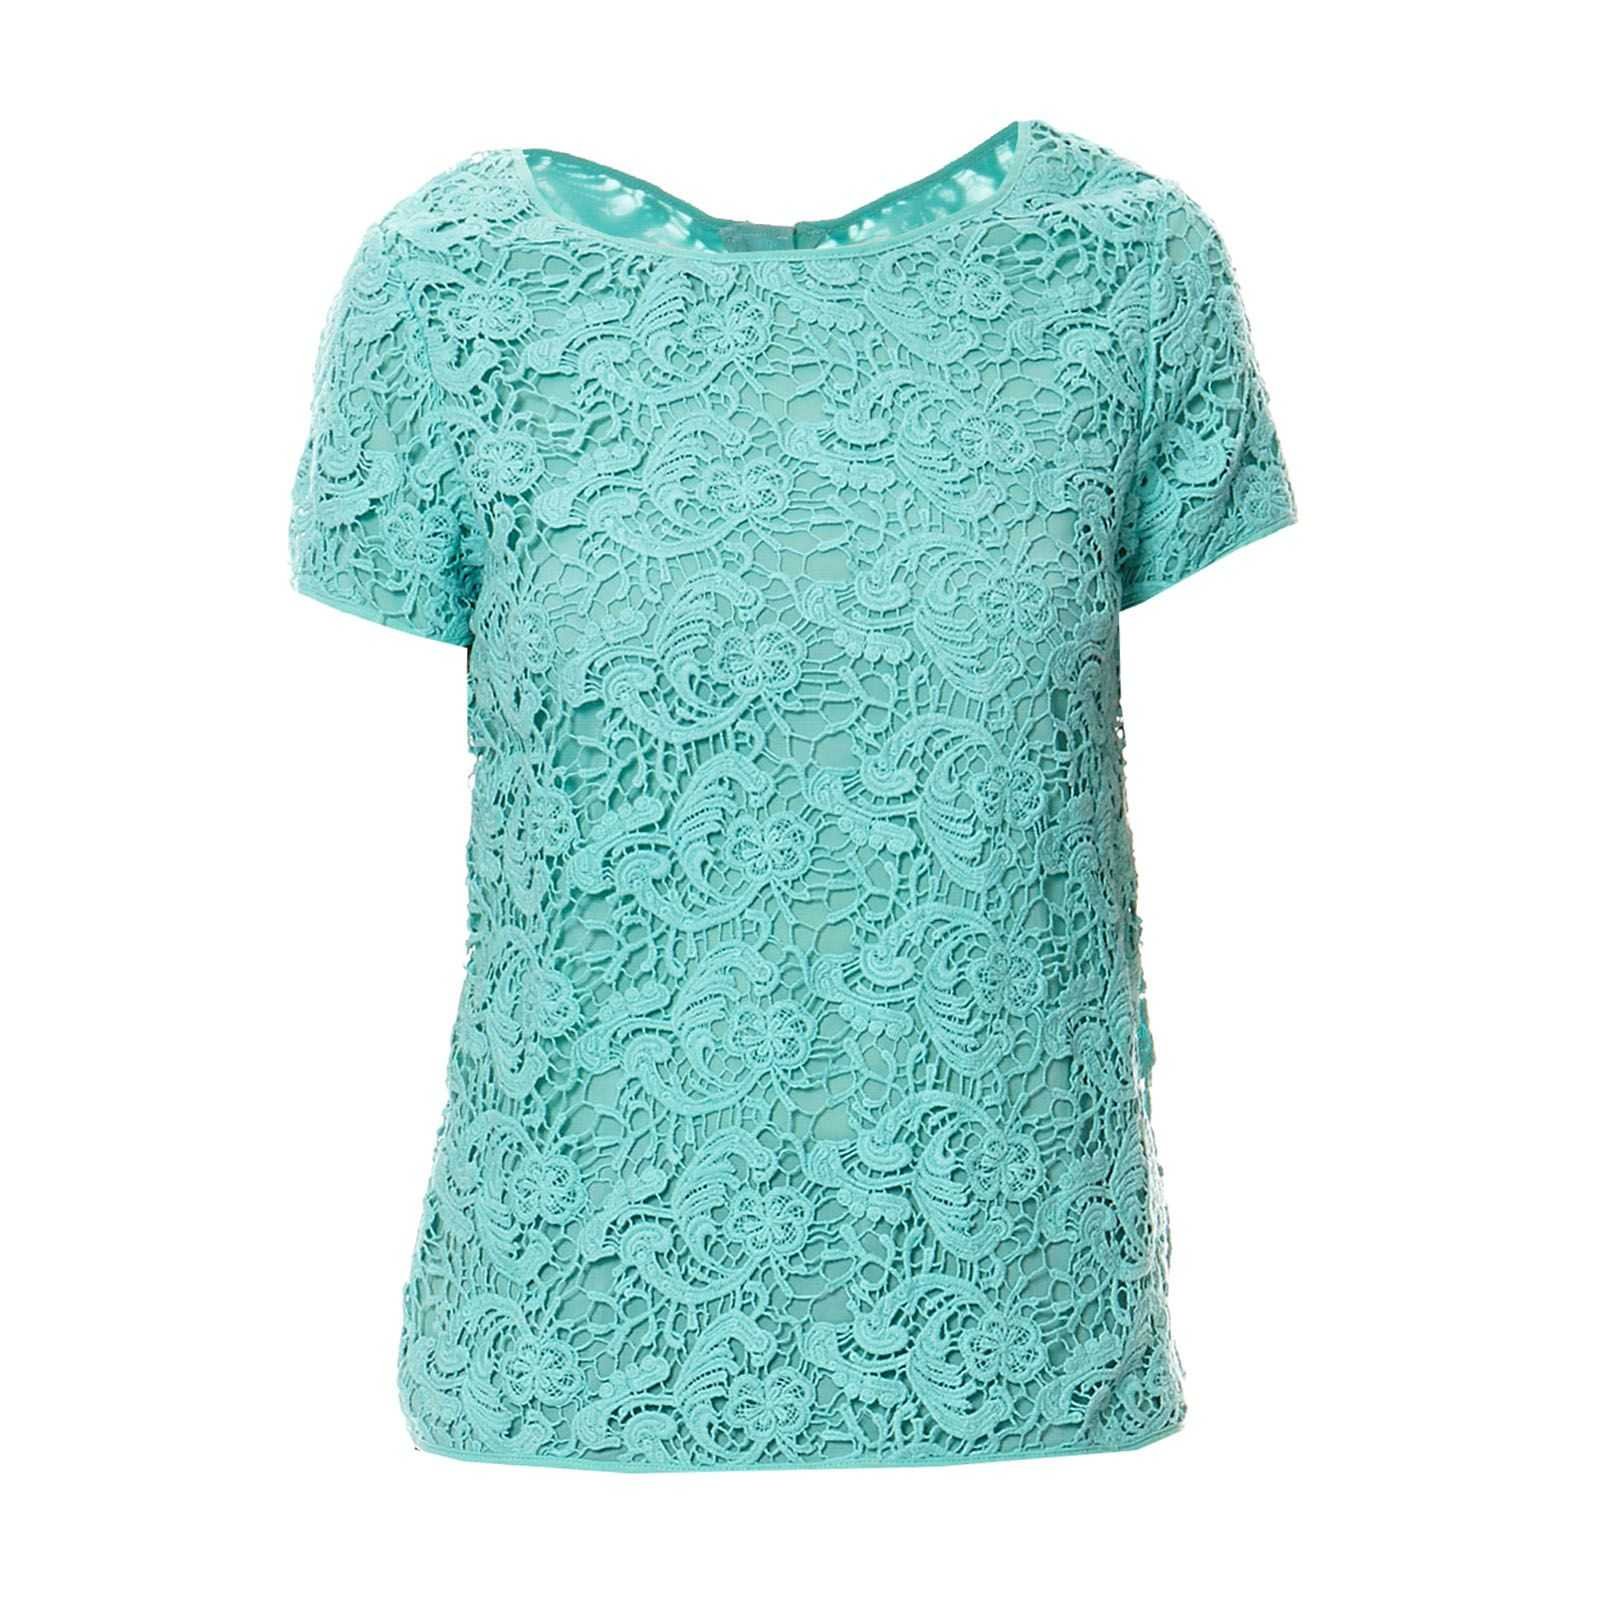 Marciano Guess :  T-shirt - turquoise